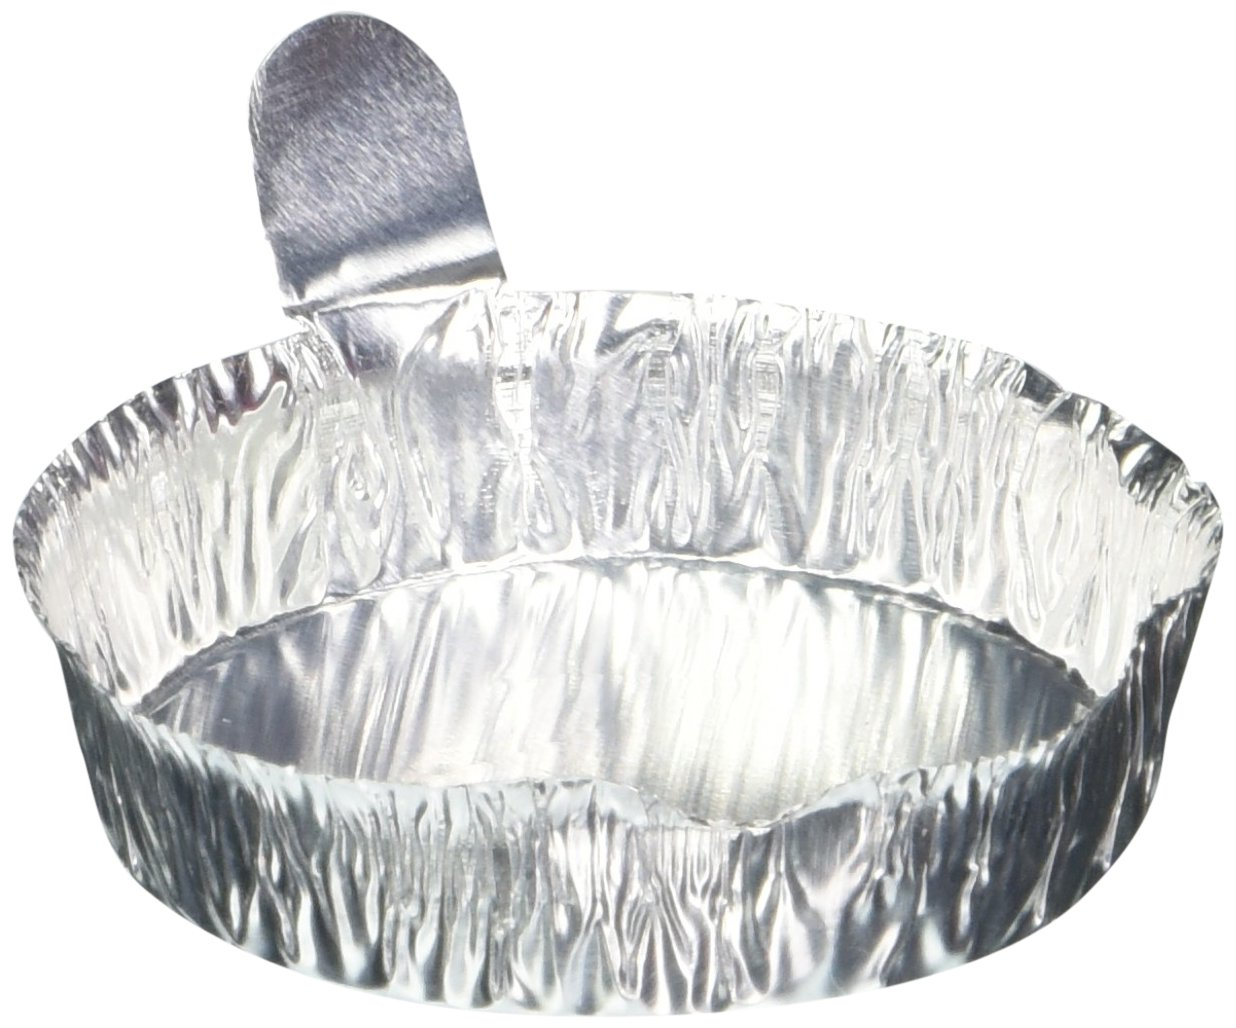 Heathrow HS14521B Aluminum Weighing Dishes, Medium, 57 mm Diameter x 14 mm Height (Pack of 100) by Heathrow Scienitific (Image #1)